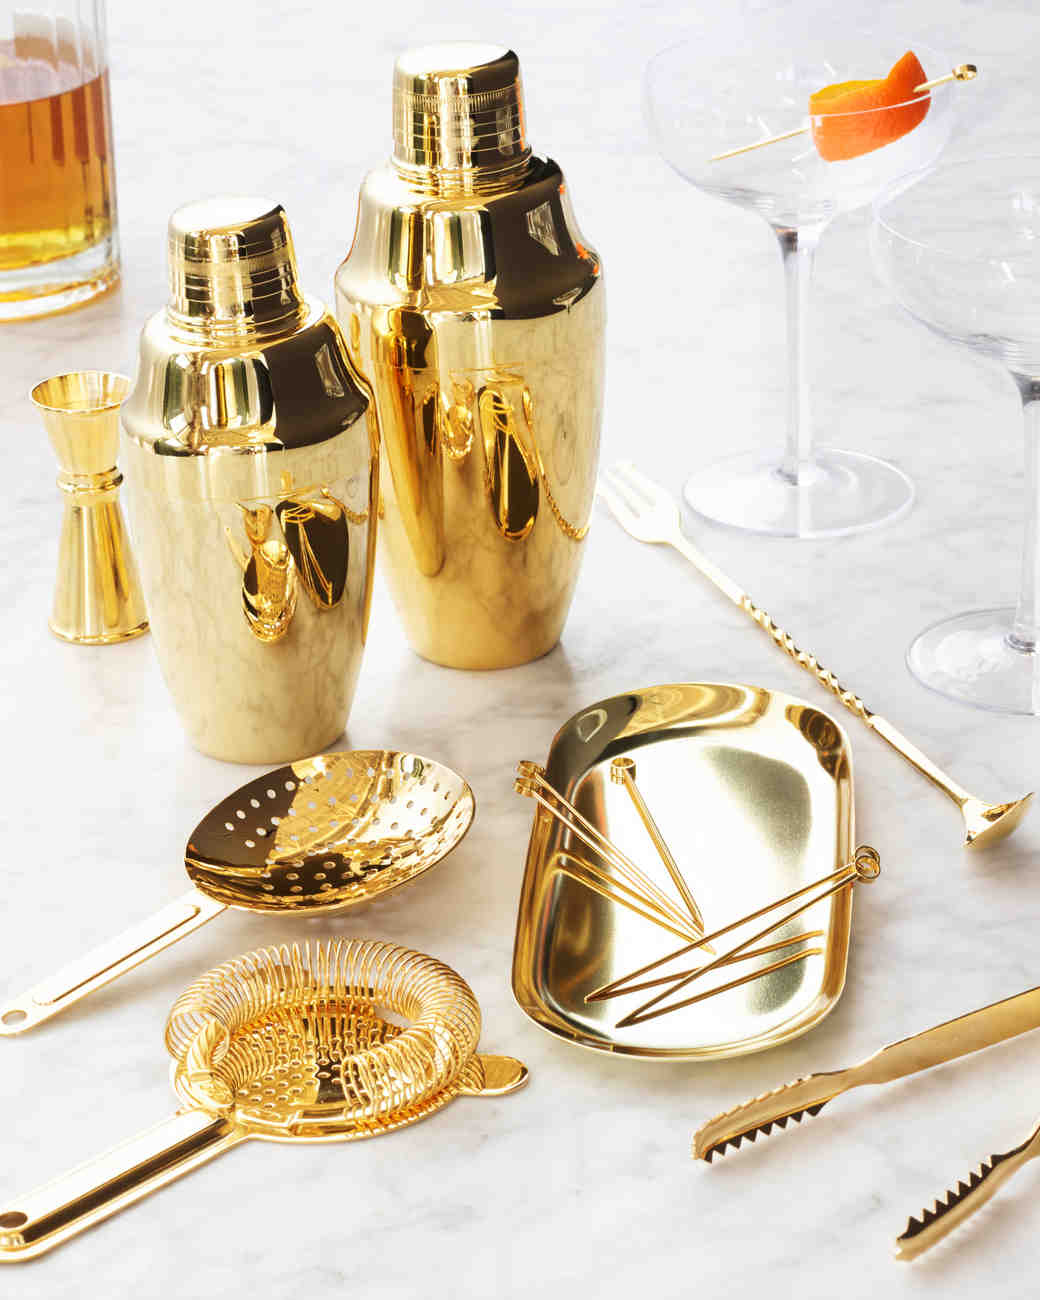 Darcy's Diary: Check Out This Gold Bar Set, Delicious Cookie Mix, and Chic BHDLN Swimwear